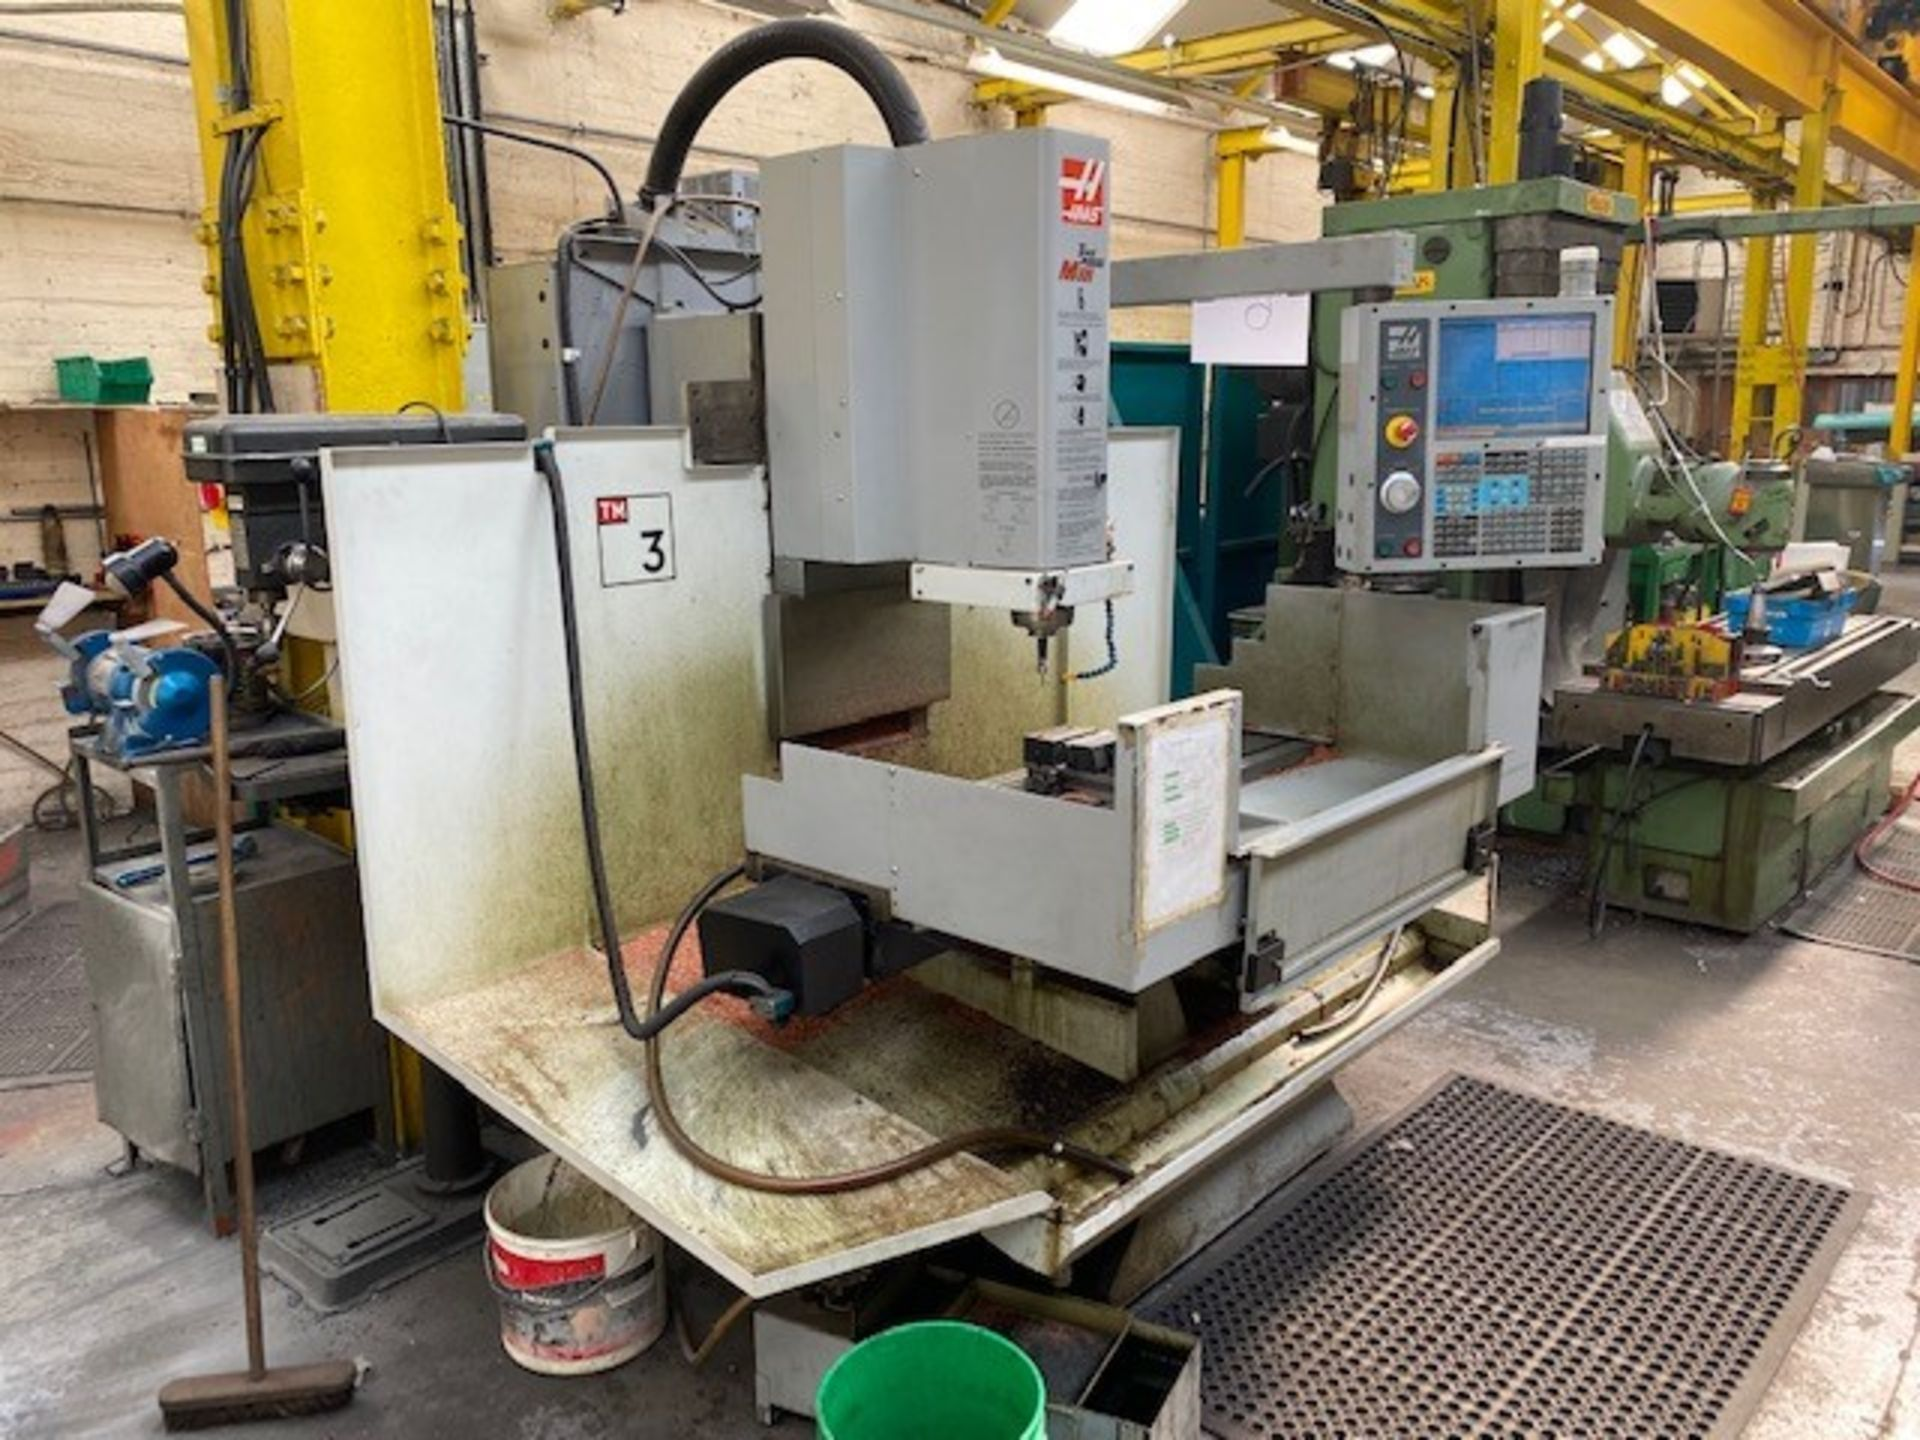 HASS CNC VERTICAL MACHINING CENTRE MODEL: TM-3CE SERIAL No: 1069469 DOM: 07/08 TO INCLUDE MANUALS - Image 3 of 5